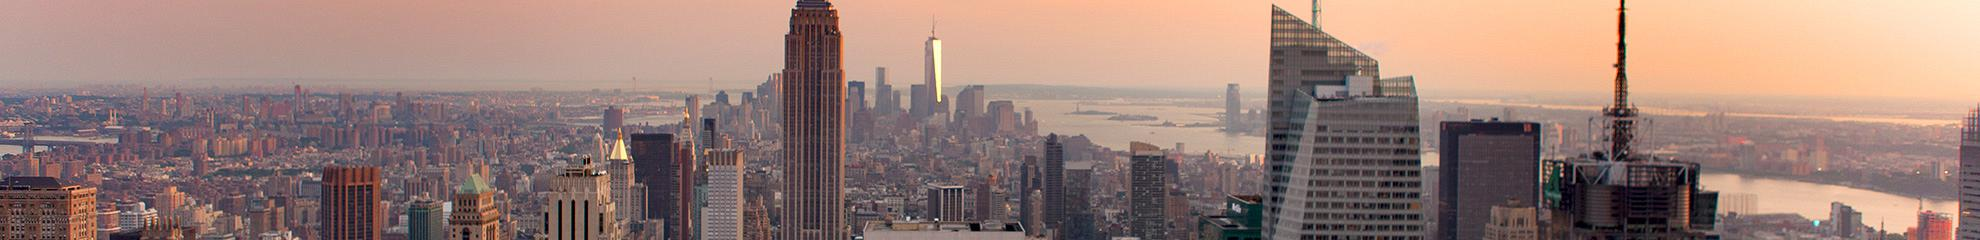 /thumb.php?thumb=%2Fuploadedfiles%2Fmedia%2FBilder%2Fcity%2Ftopbanners%2FEnglisch%2FNew-York_1980x330_75.jpg